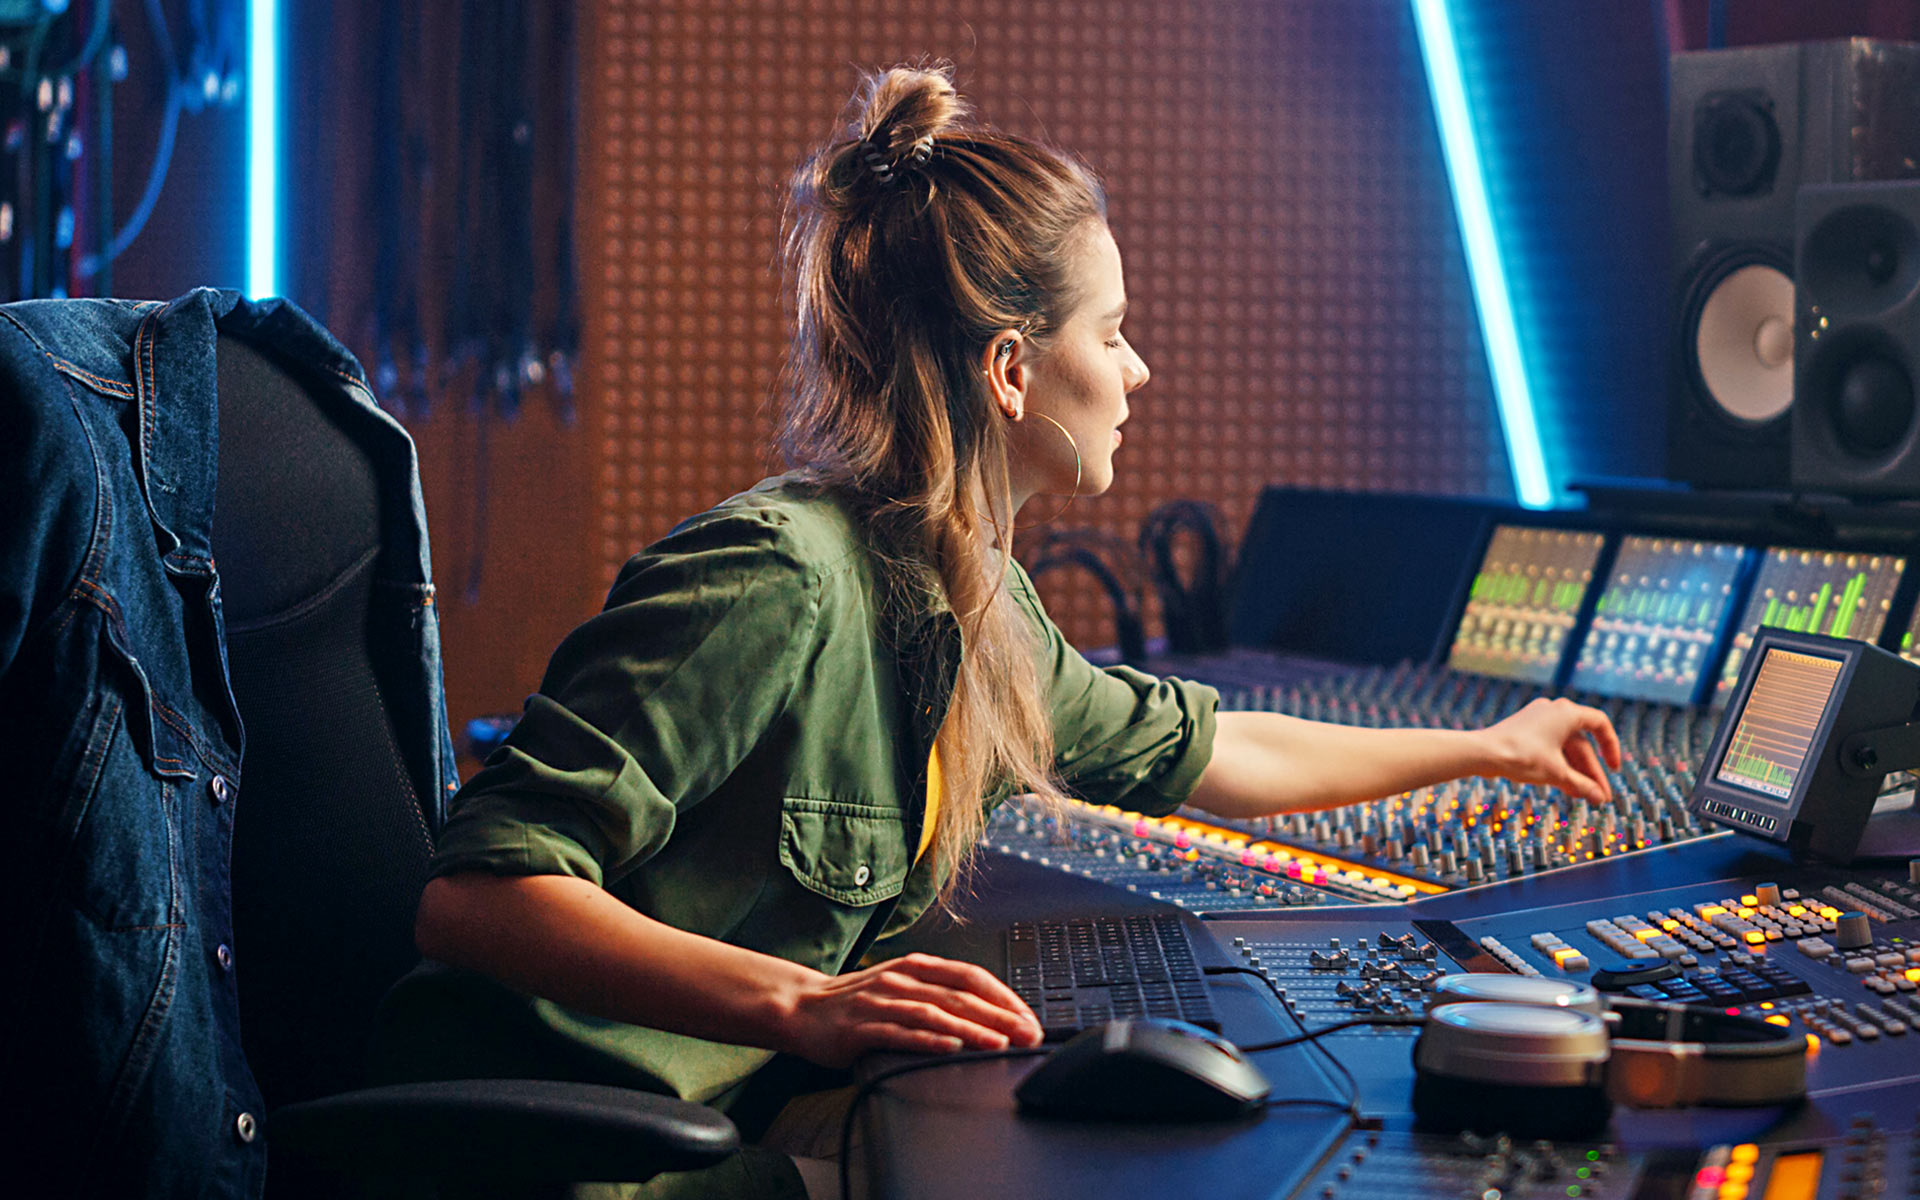 A music producer sitting at a sound board in a recording studio.